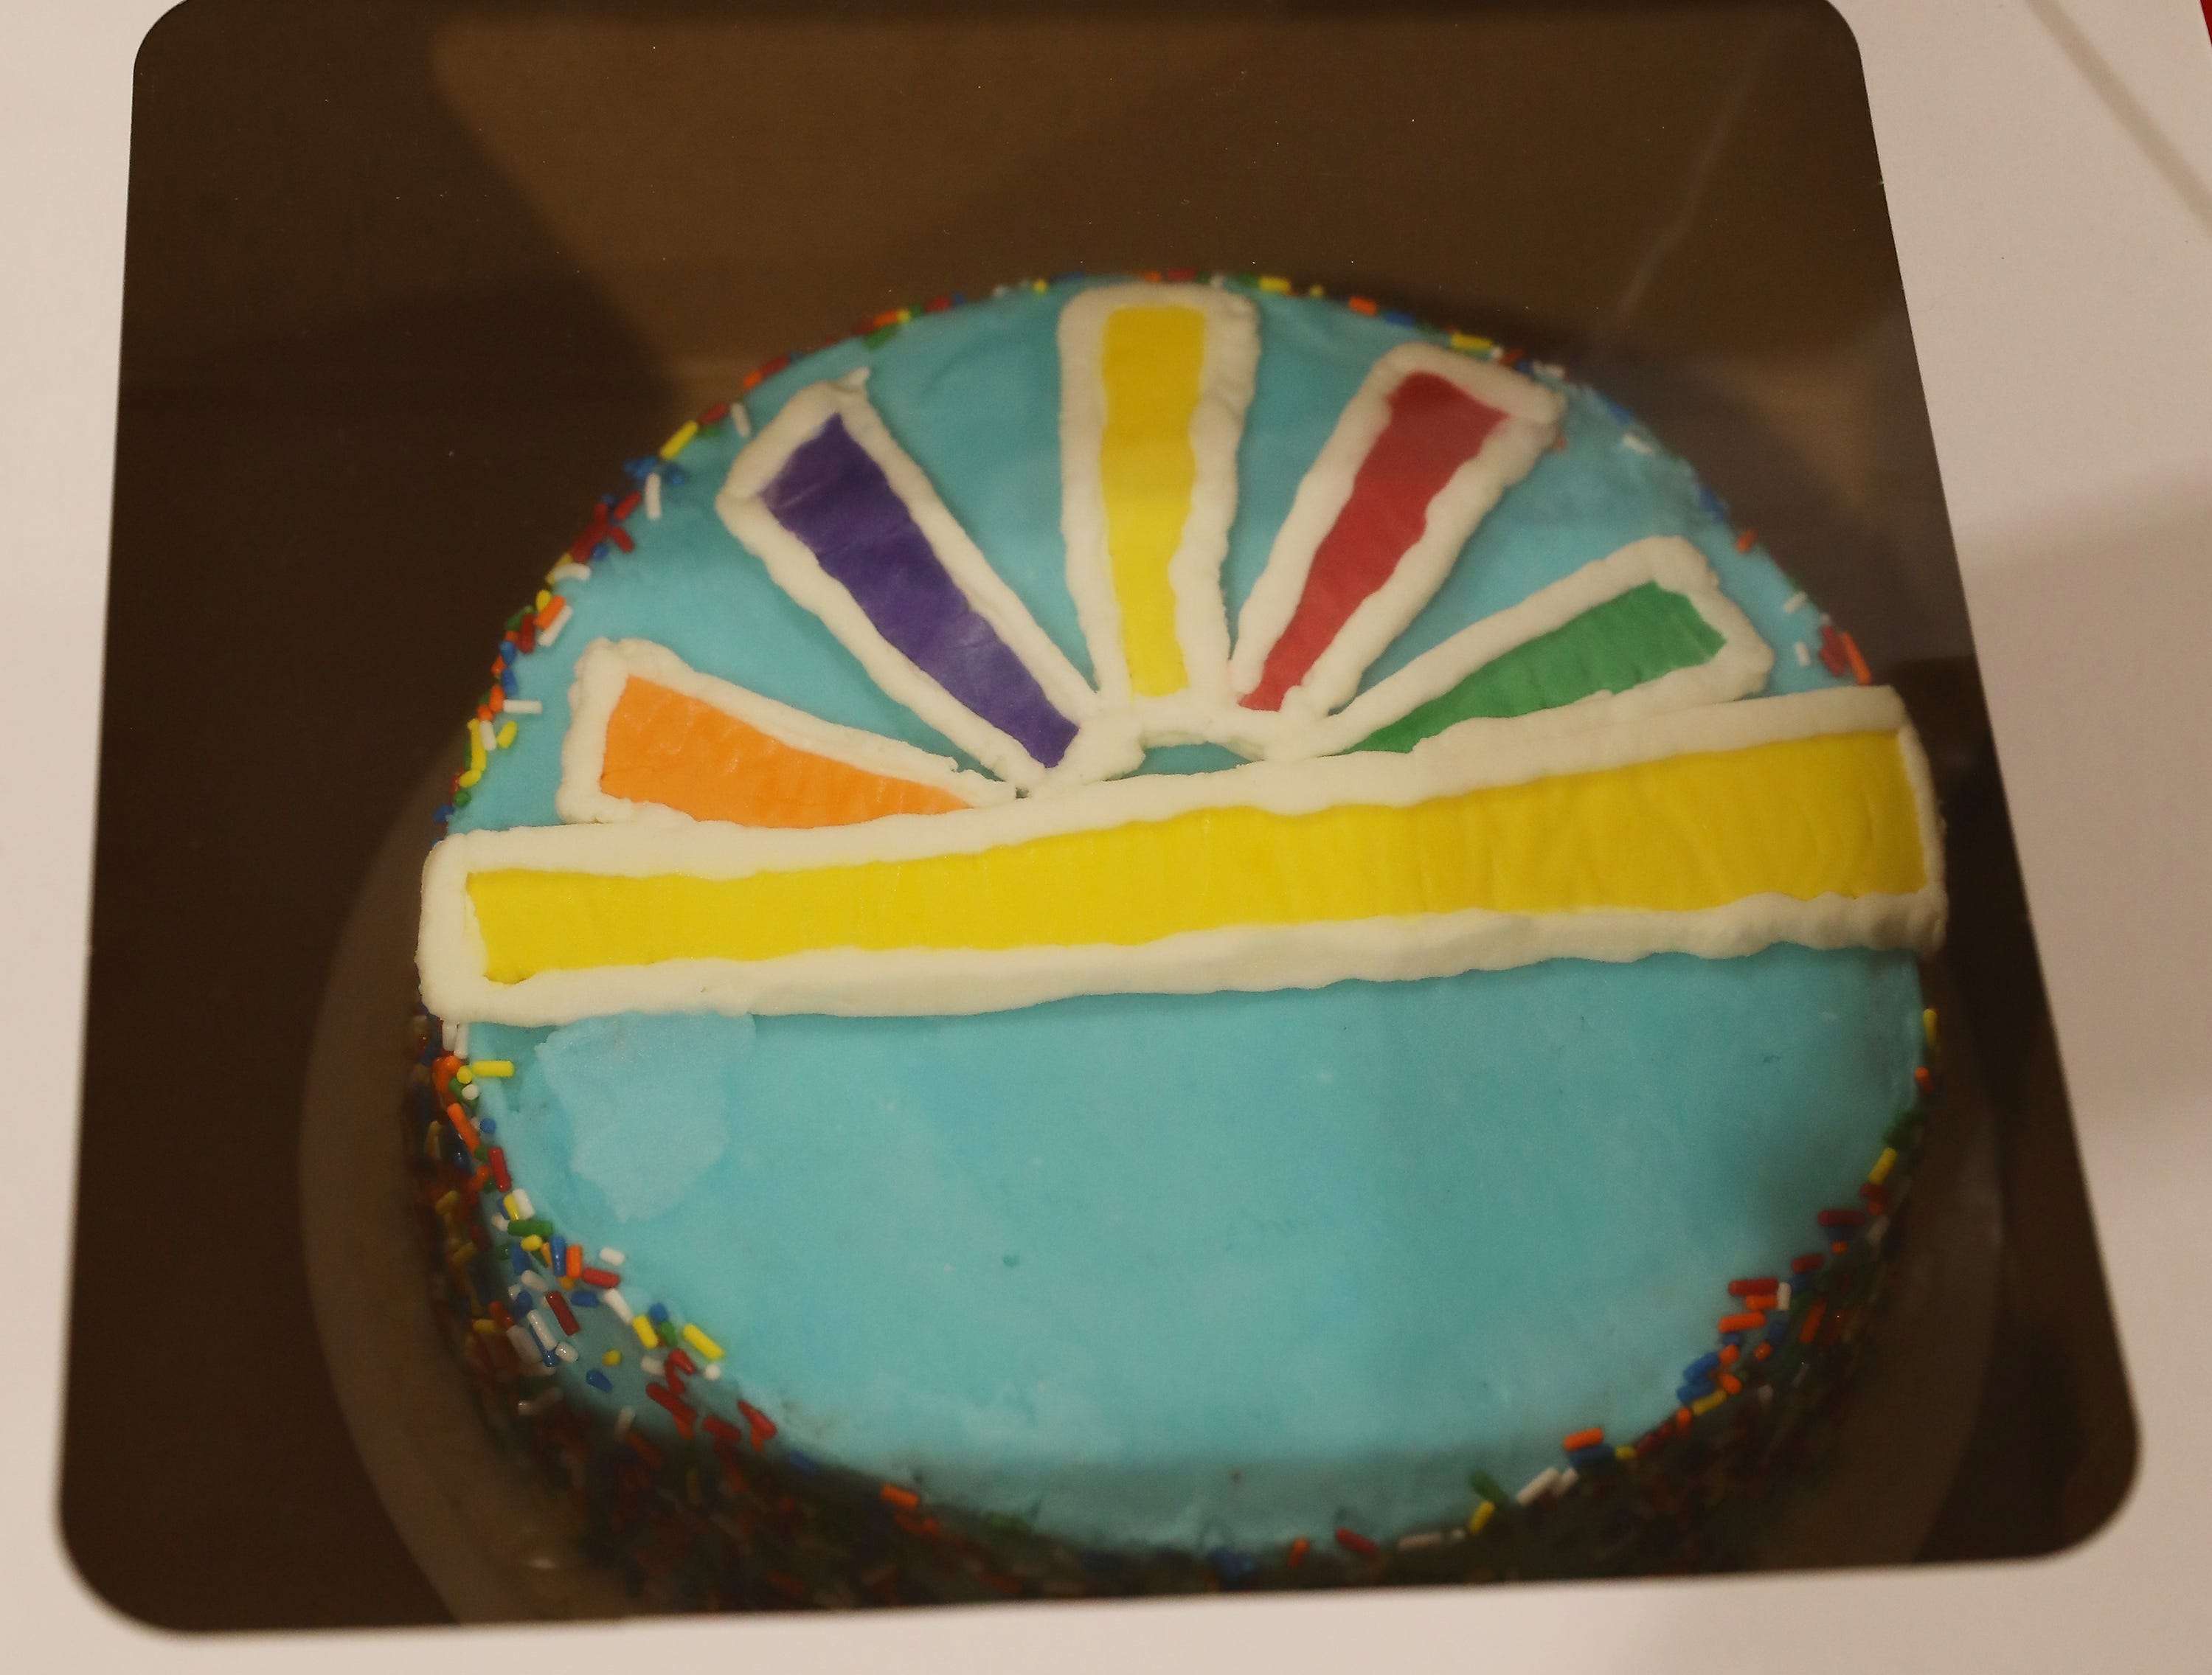 1:00 P.M. Thursday cake 98 Parents of Children with Disabilities Support Group - kids' weighted blanket, cover, essential oils and diffuser; $150